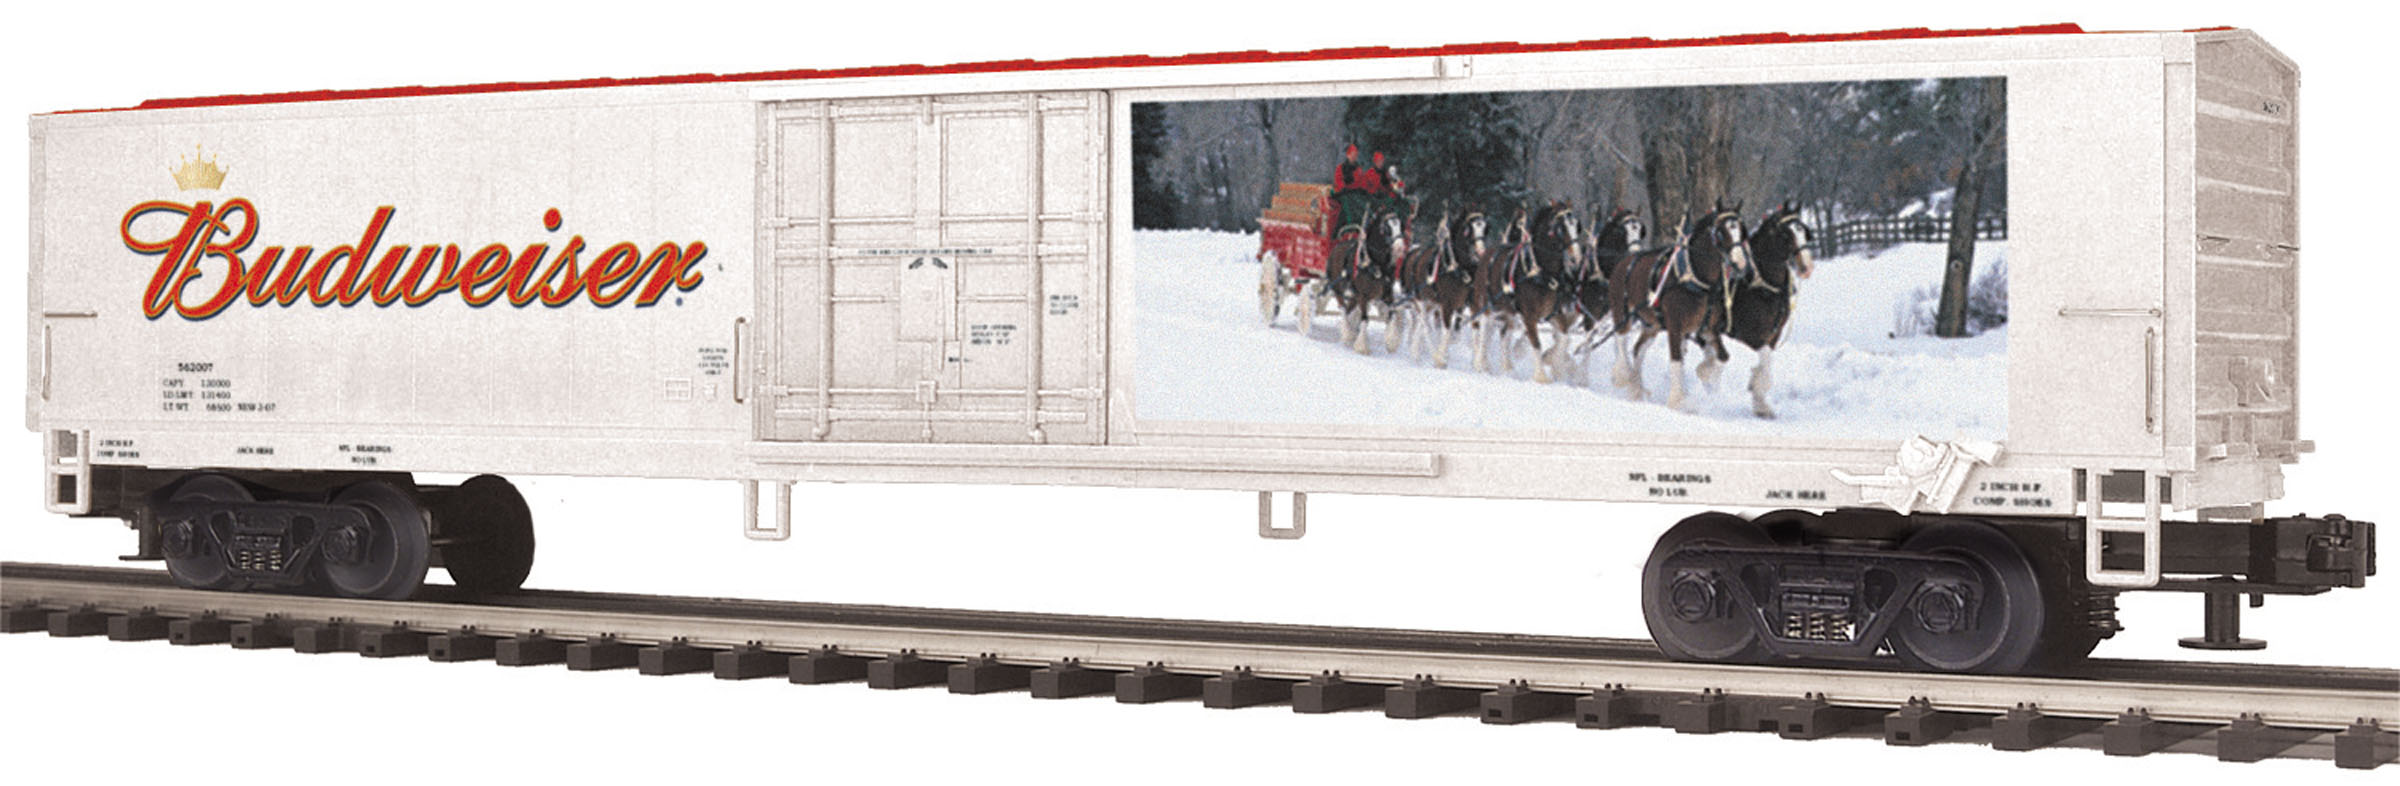 Budweiser 60-foot Reefer Car image